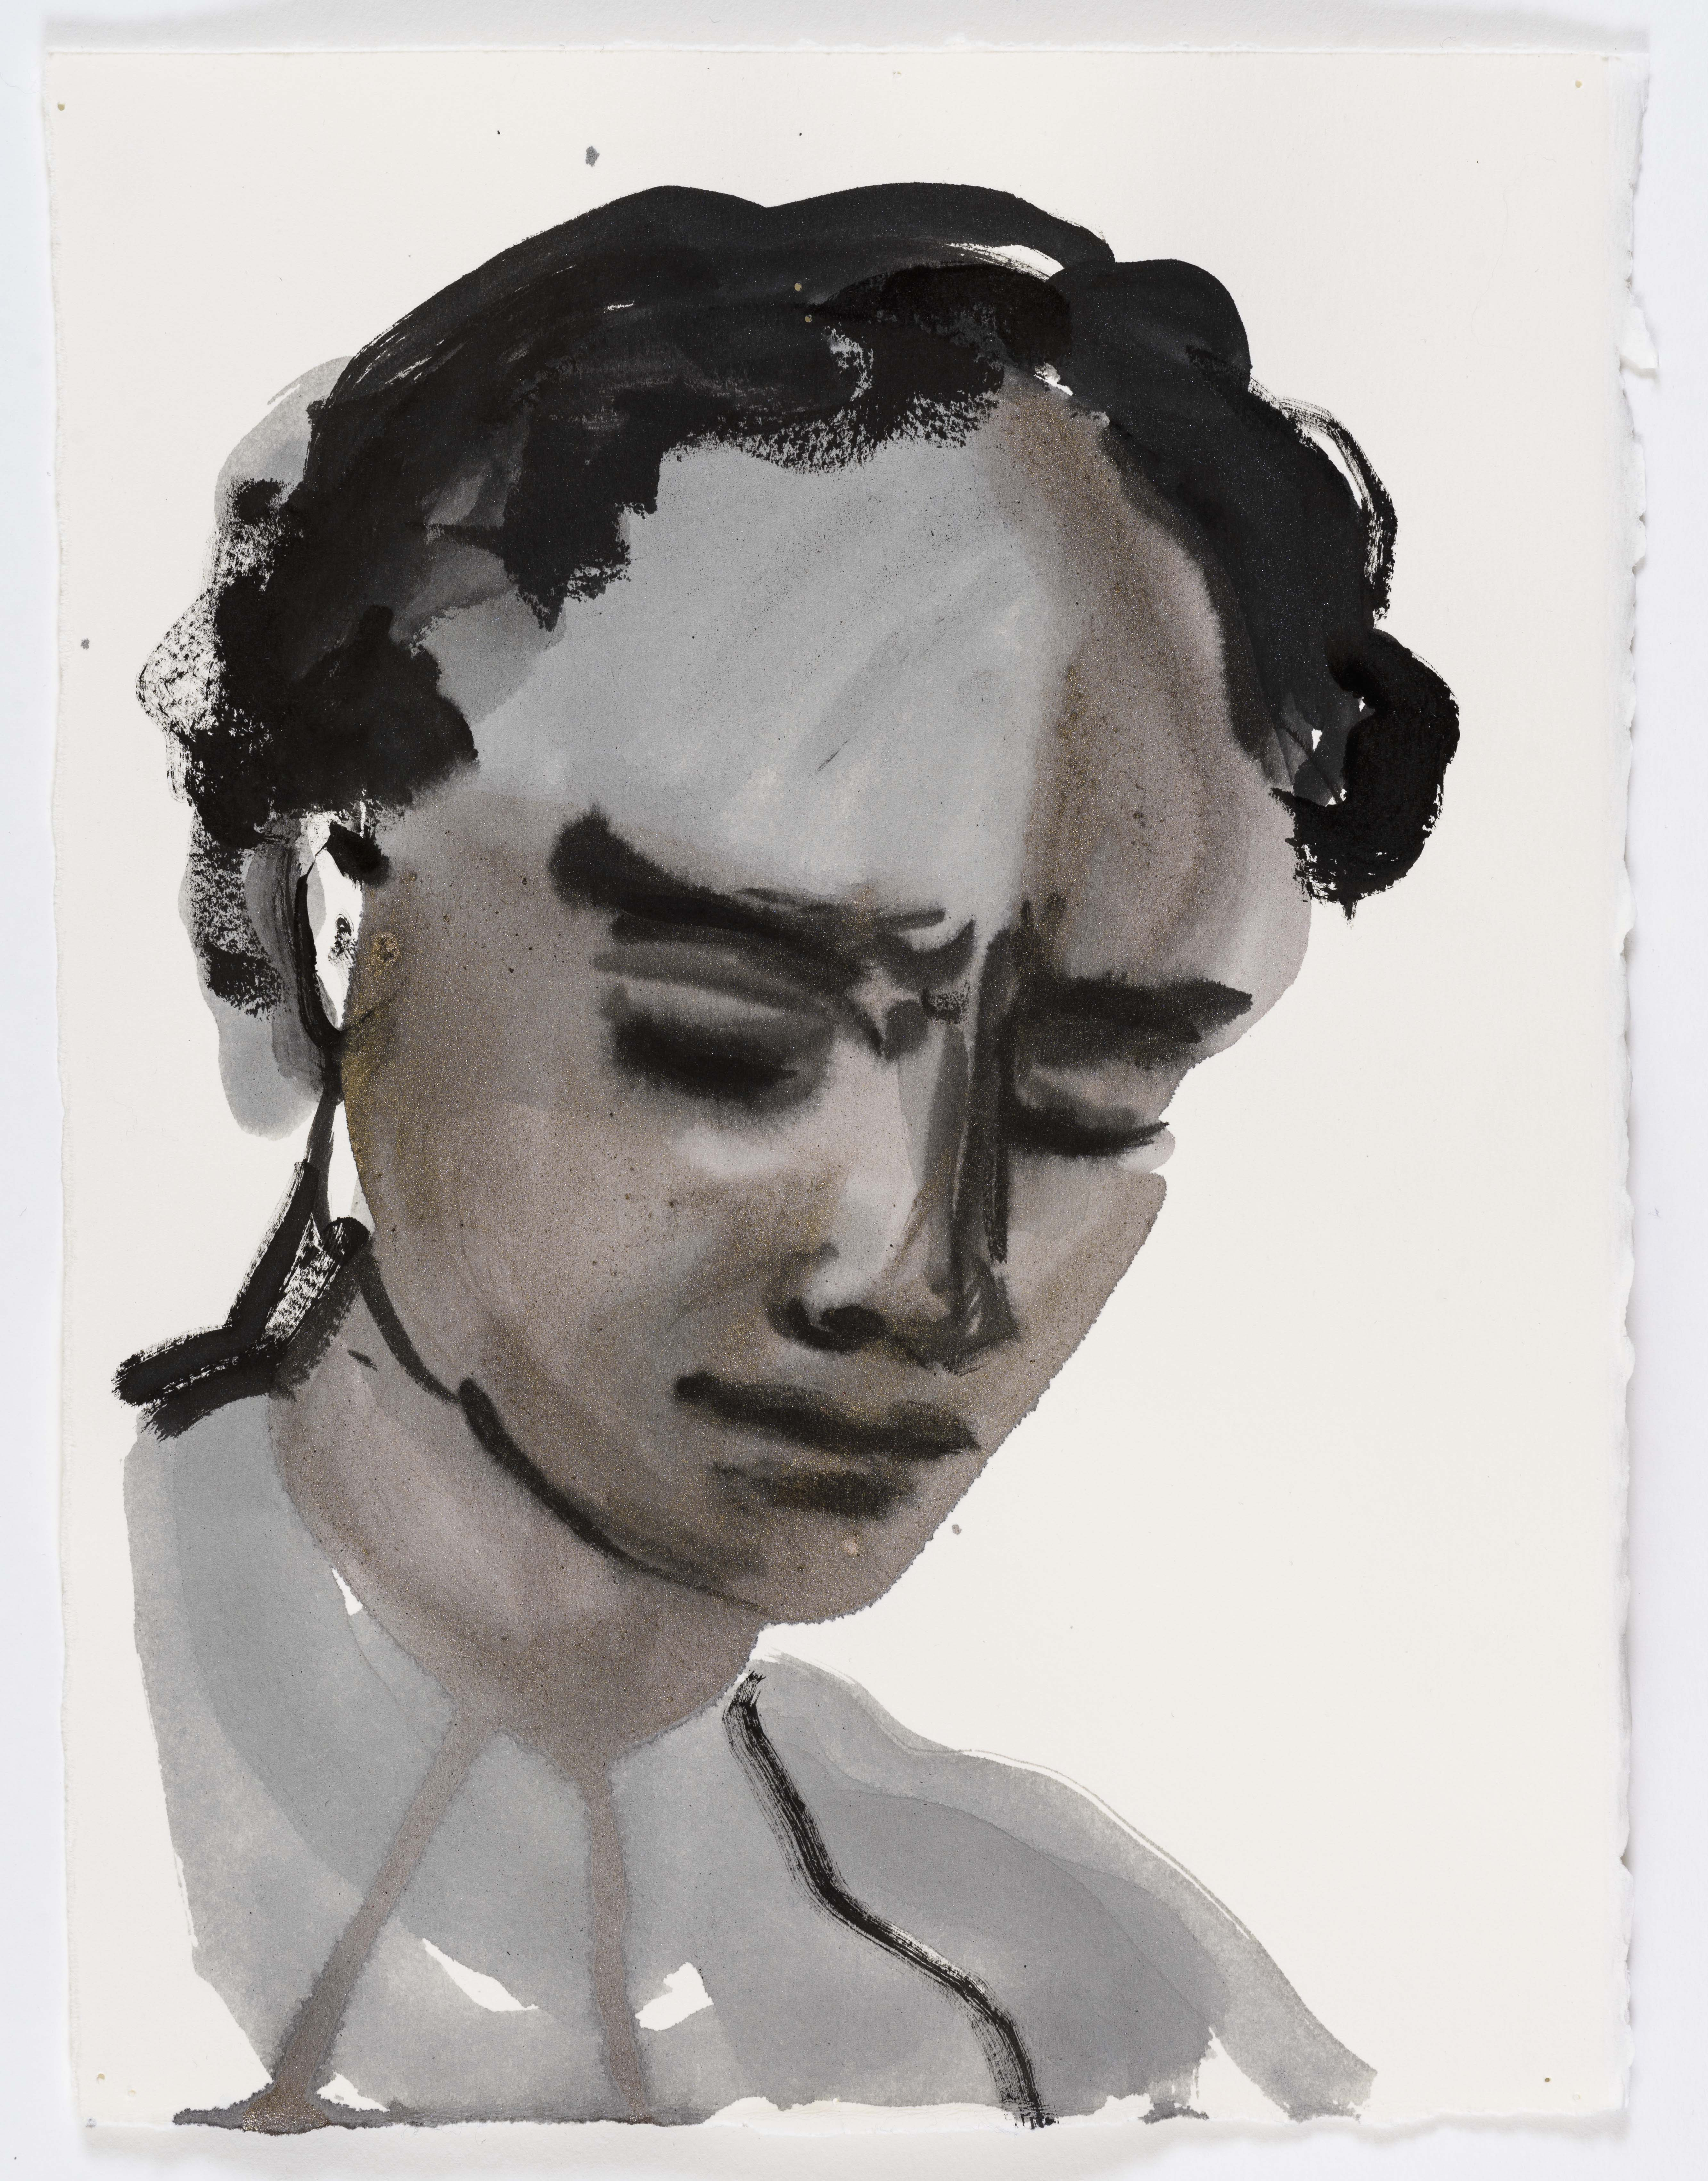 """Marlene Dumas, """"Adonis blushes"""", 2015-2016, Ink wash and metallic acrylic on paper 11 1/2 x 8 5/8 inches 29.2 x 21.9 cm. Exposition """"Myths & Mortals"""", Galerie David Zwirner, New-York"""